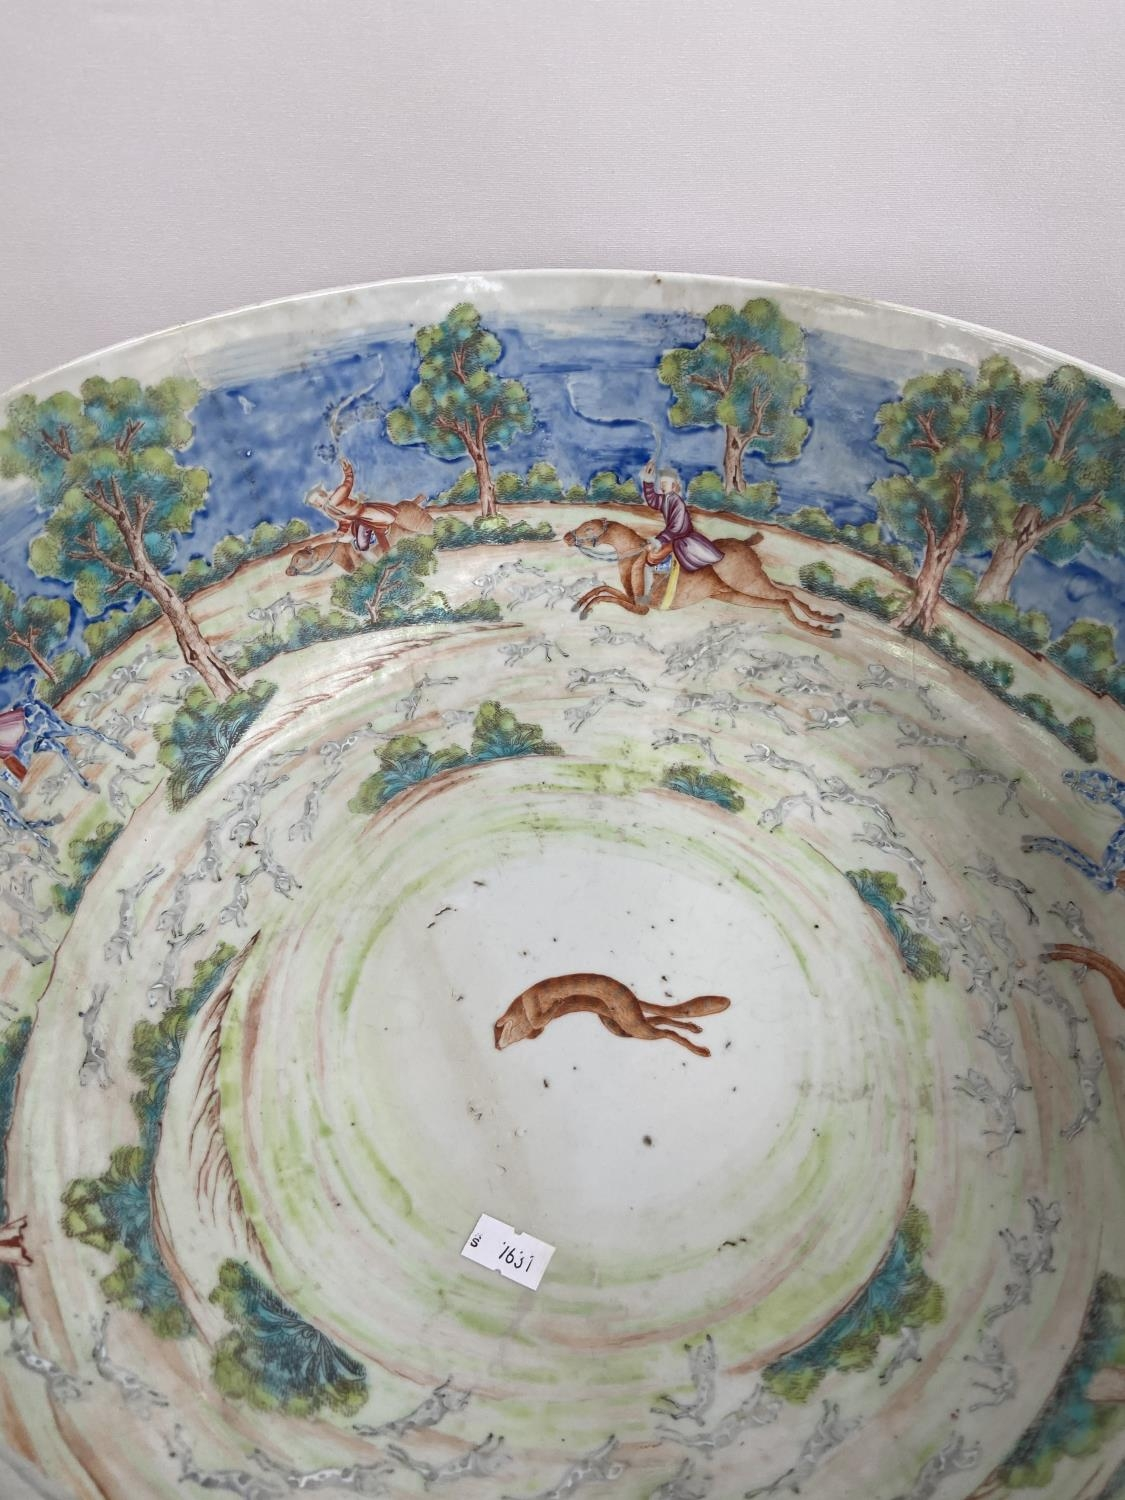 A LARGE 19TH CENTURY CHINESE HAND PAINTED BOWL. EXTERIOR DEPICTS CHINESE HUNTING SCENE PANELS. THE - Image 16 of 39